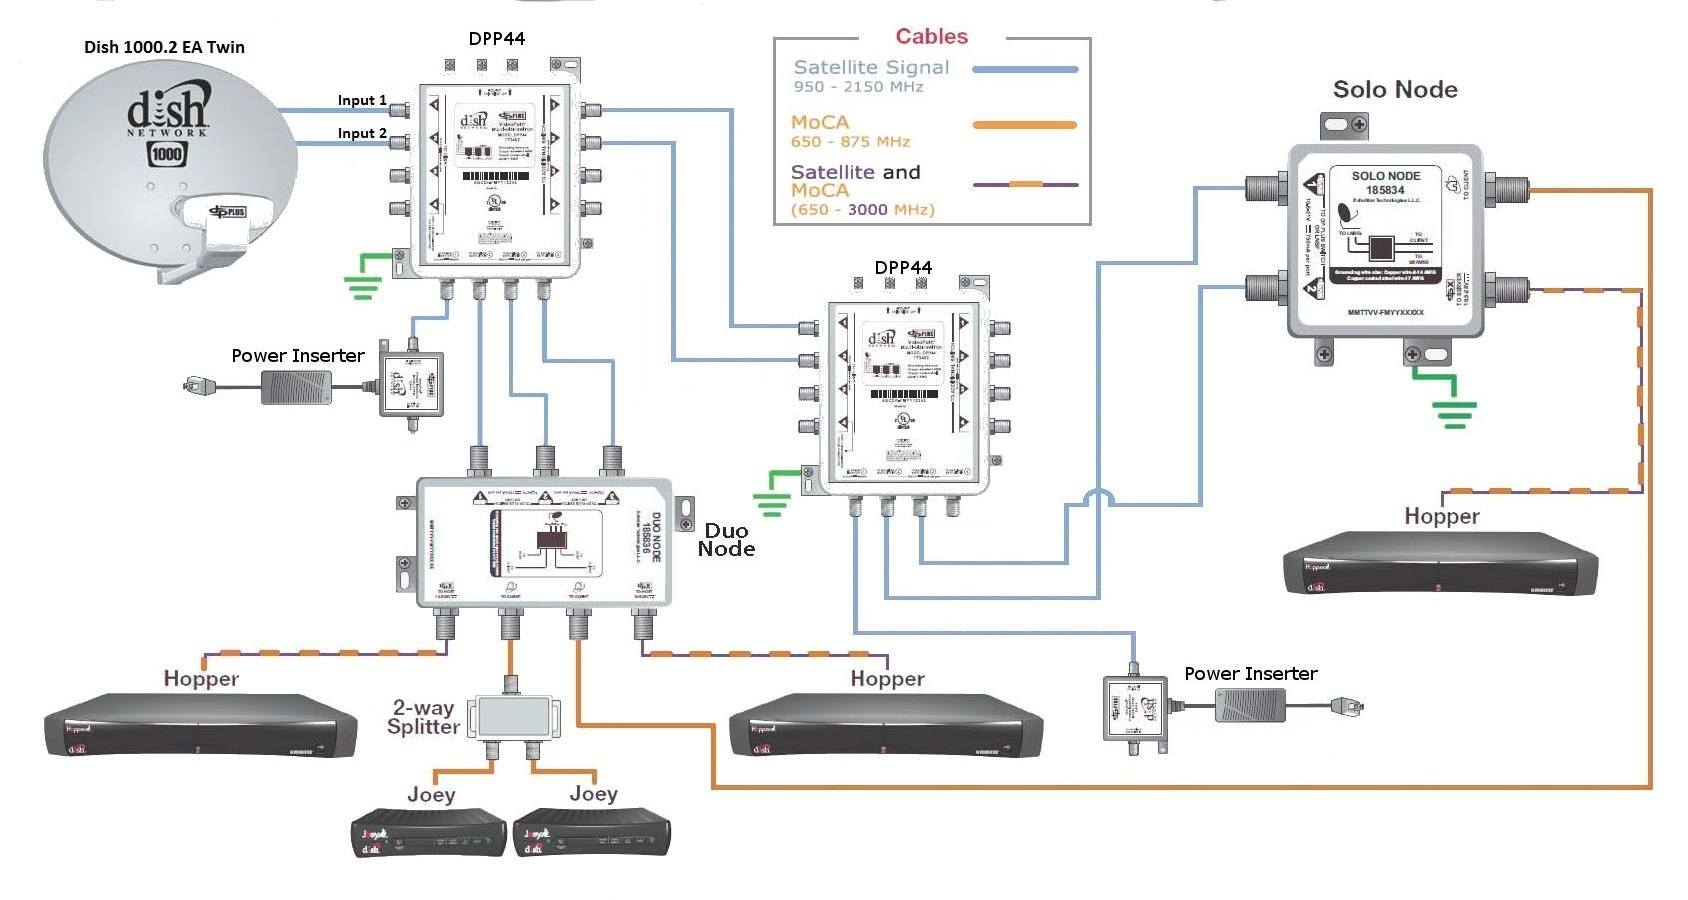 dish network wiring diagram hopper dish network wiring diagram  at crackthecode.co